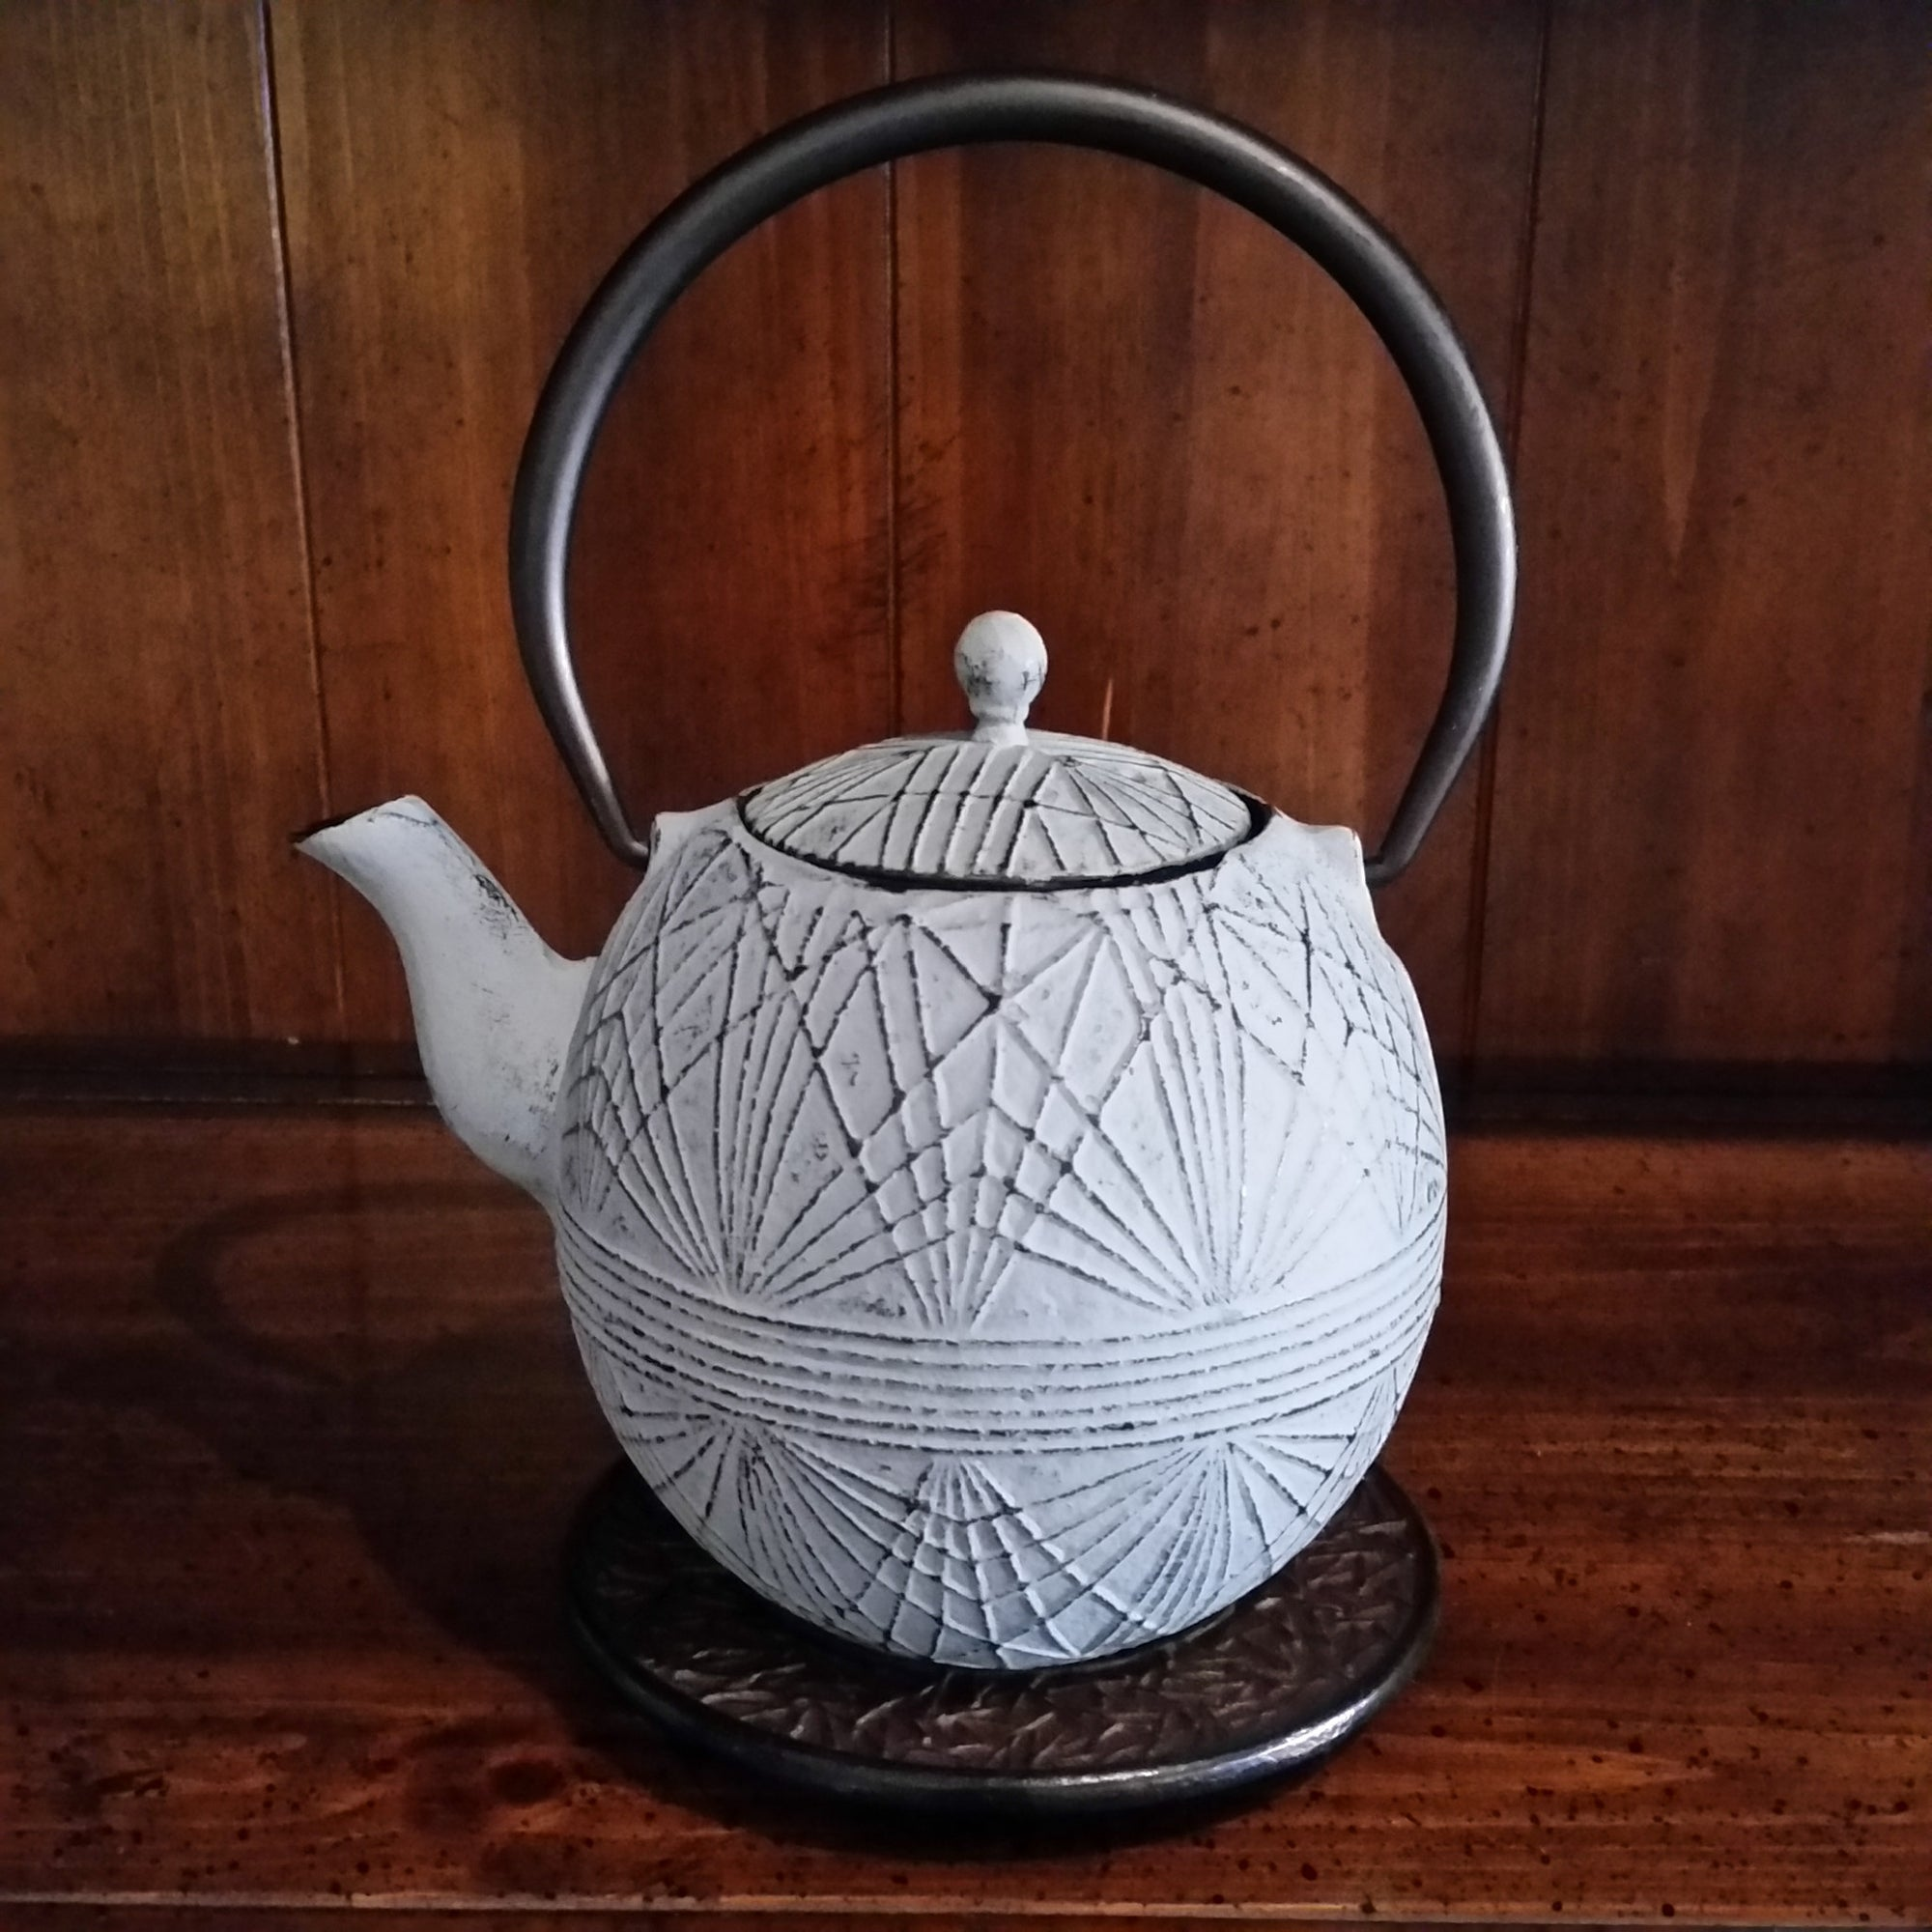 Cast Iron Teapot - Kriss Kross - The Tea & Spice Shoppe